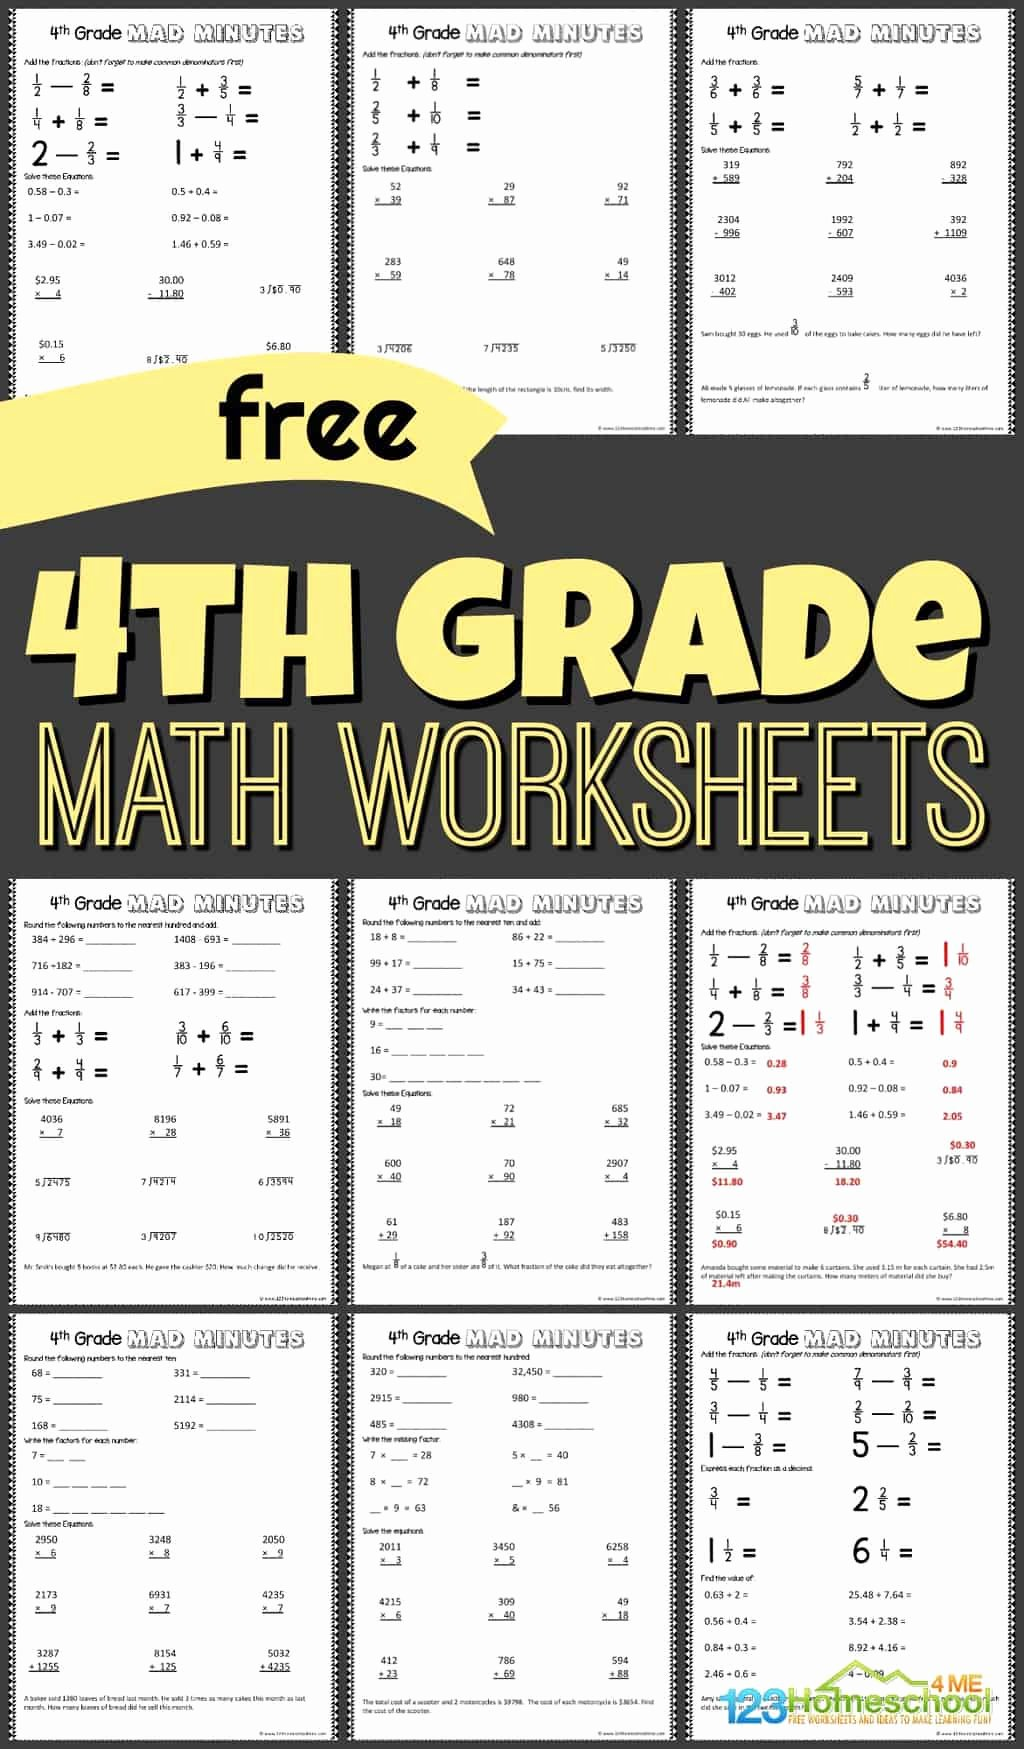 Multiplication Worksheets 4th Grade Printable New Free 4th Grade Math Worksheets